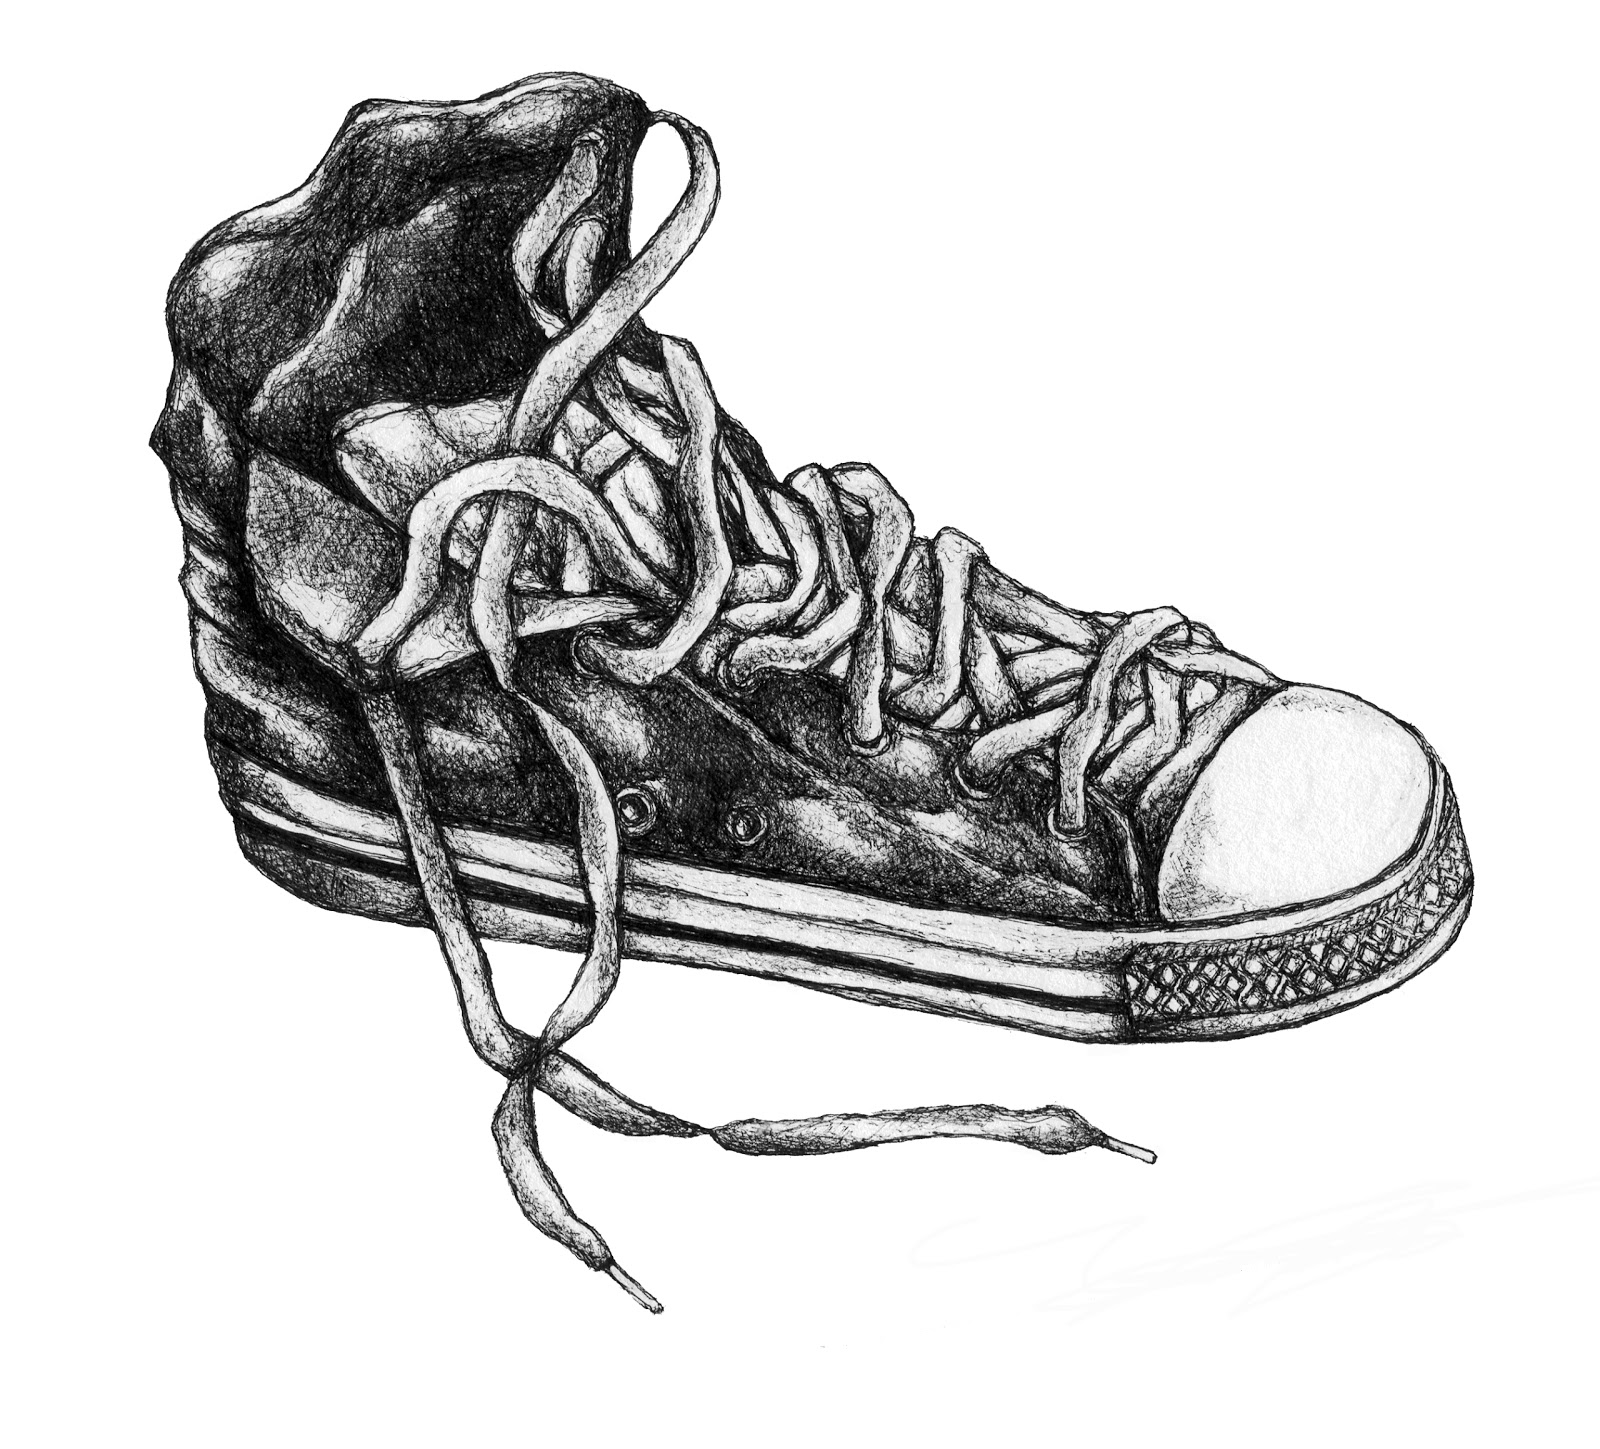 drawing of shoes image draw by design shoes for thought image of drawing shoes